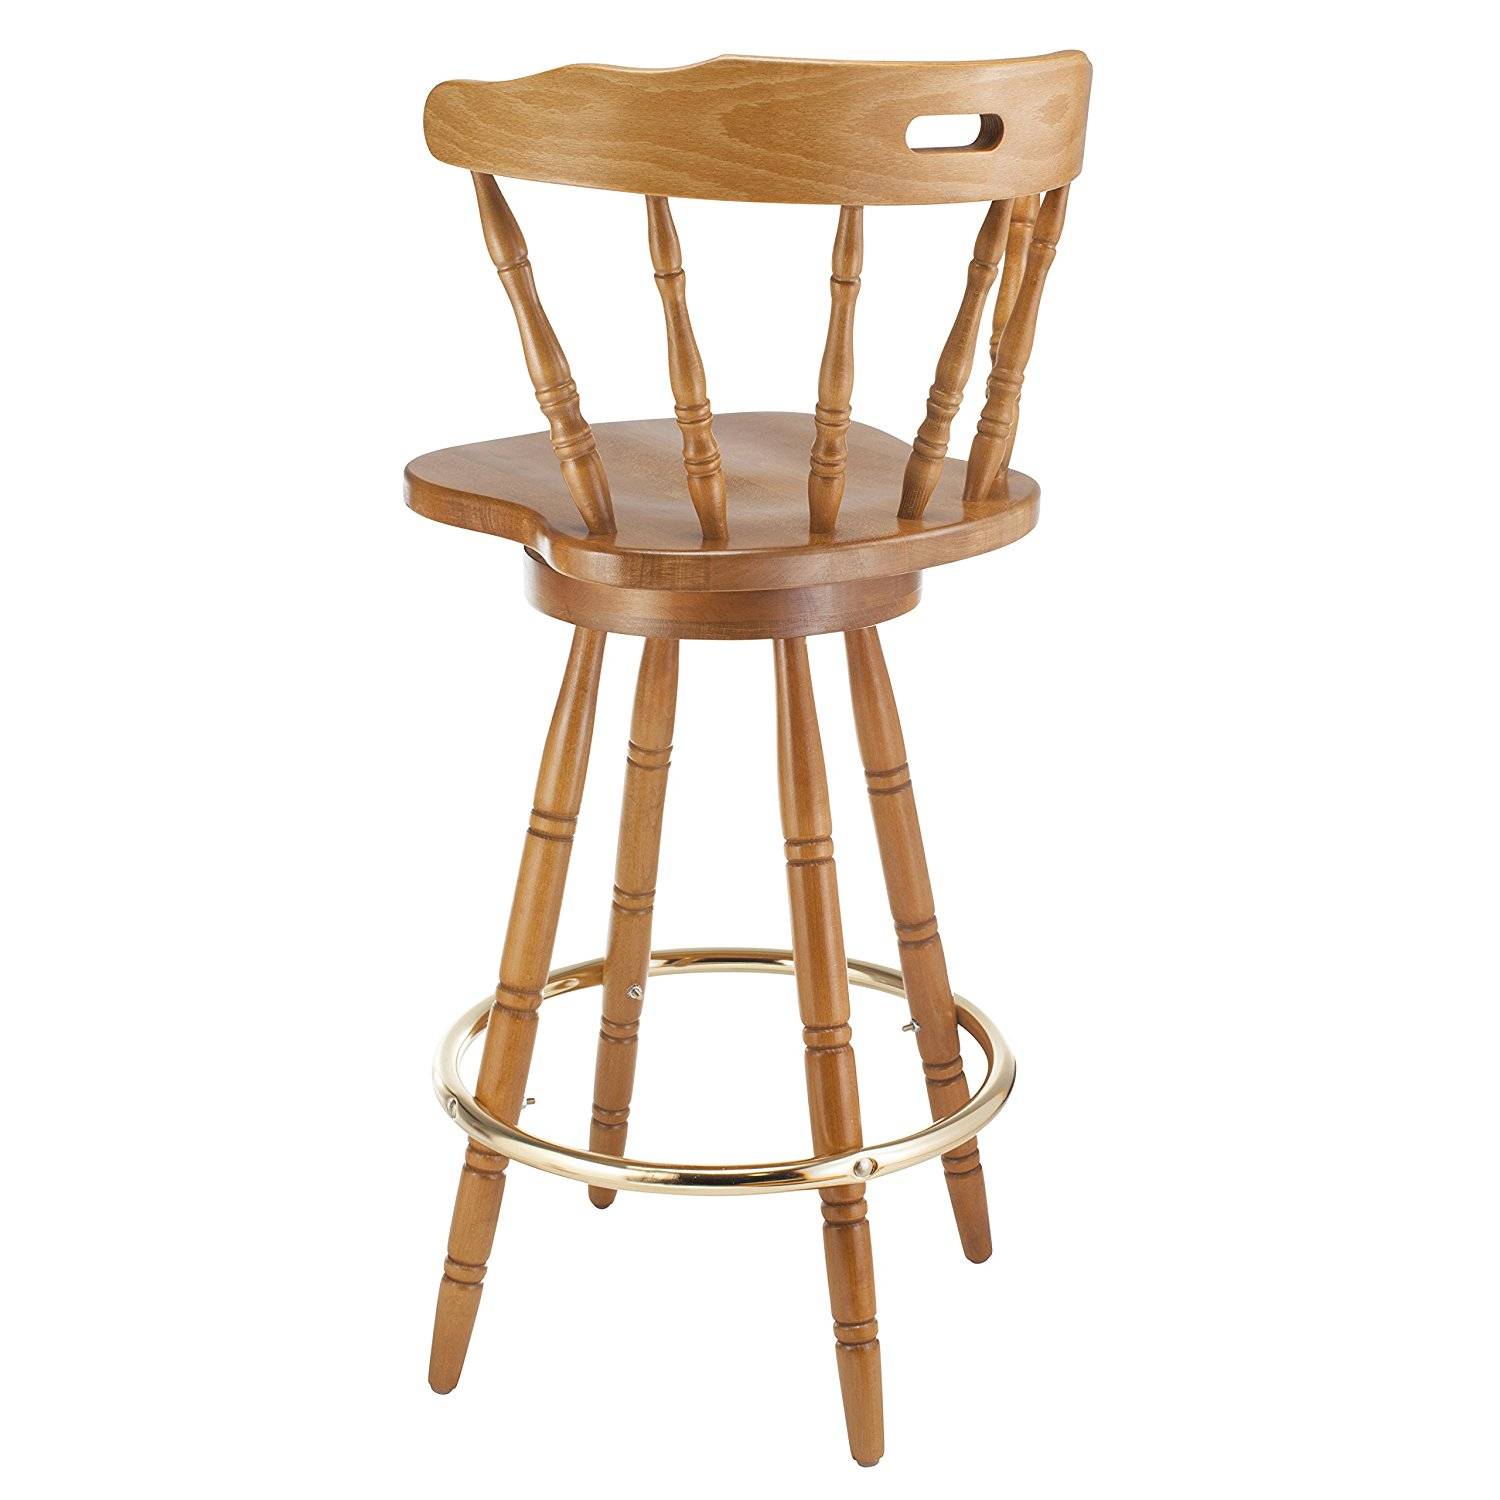 Beechwood Mountain Bsd-33B-C Solid Beech Wood bar Stool in Cherry for Kitchen & Dining, NA by Overstock